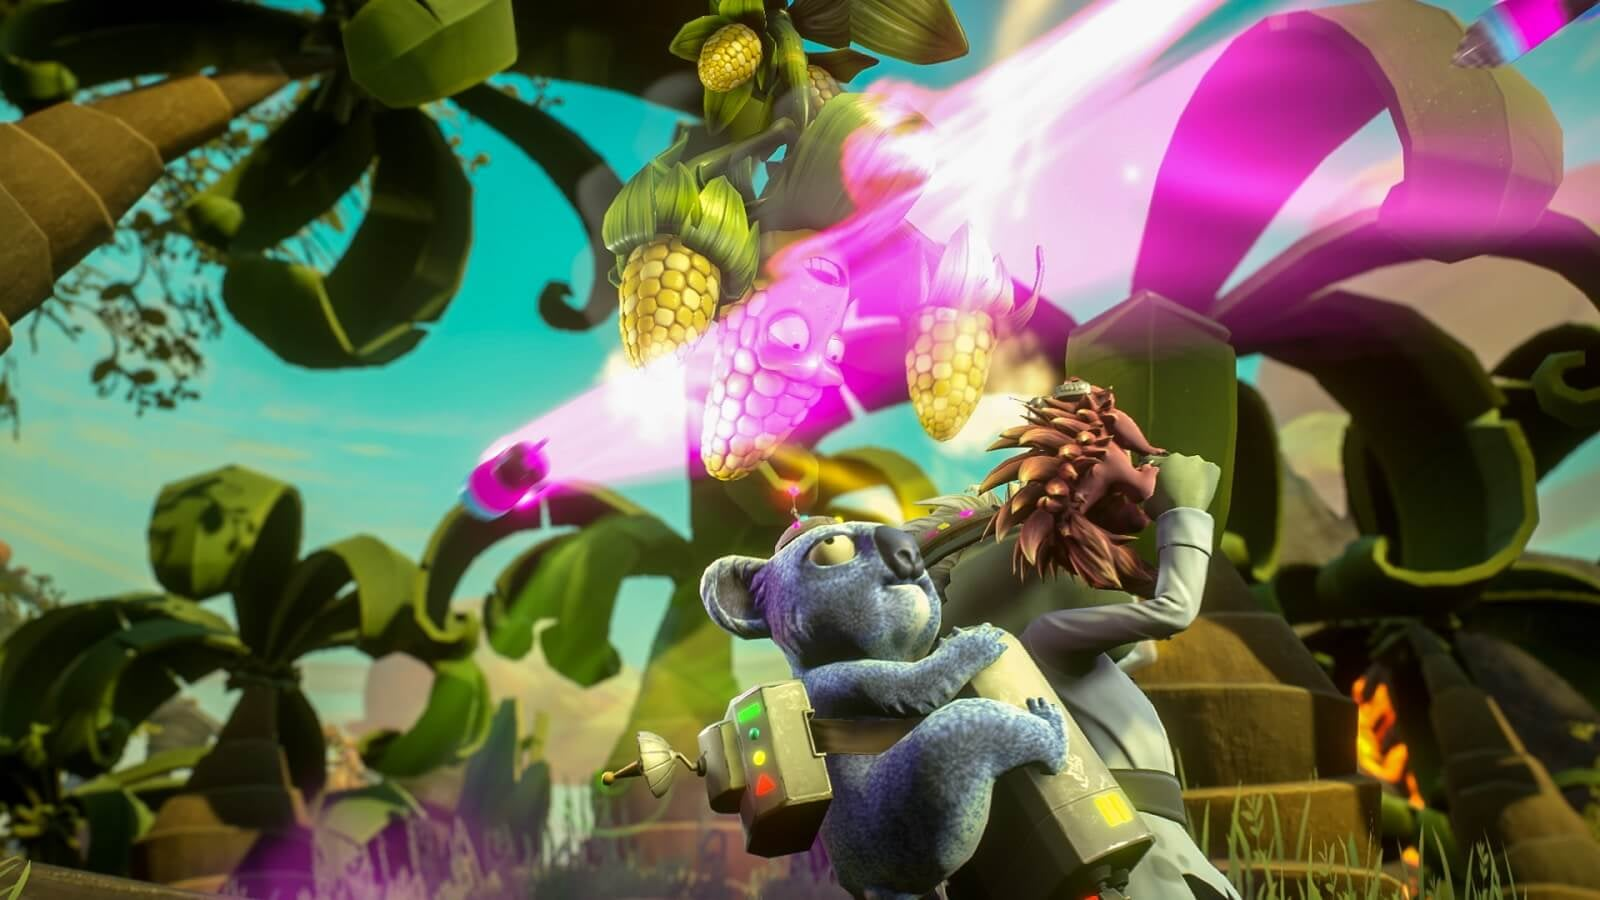 PvZ Garden Warfare 2 Gameplay and Artwork Montage